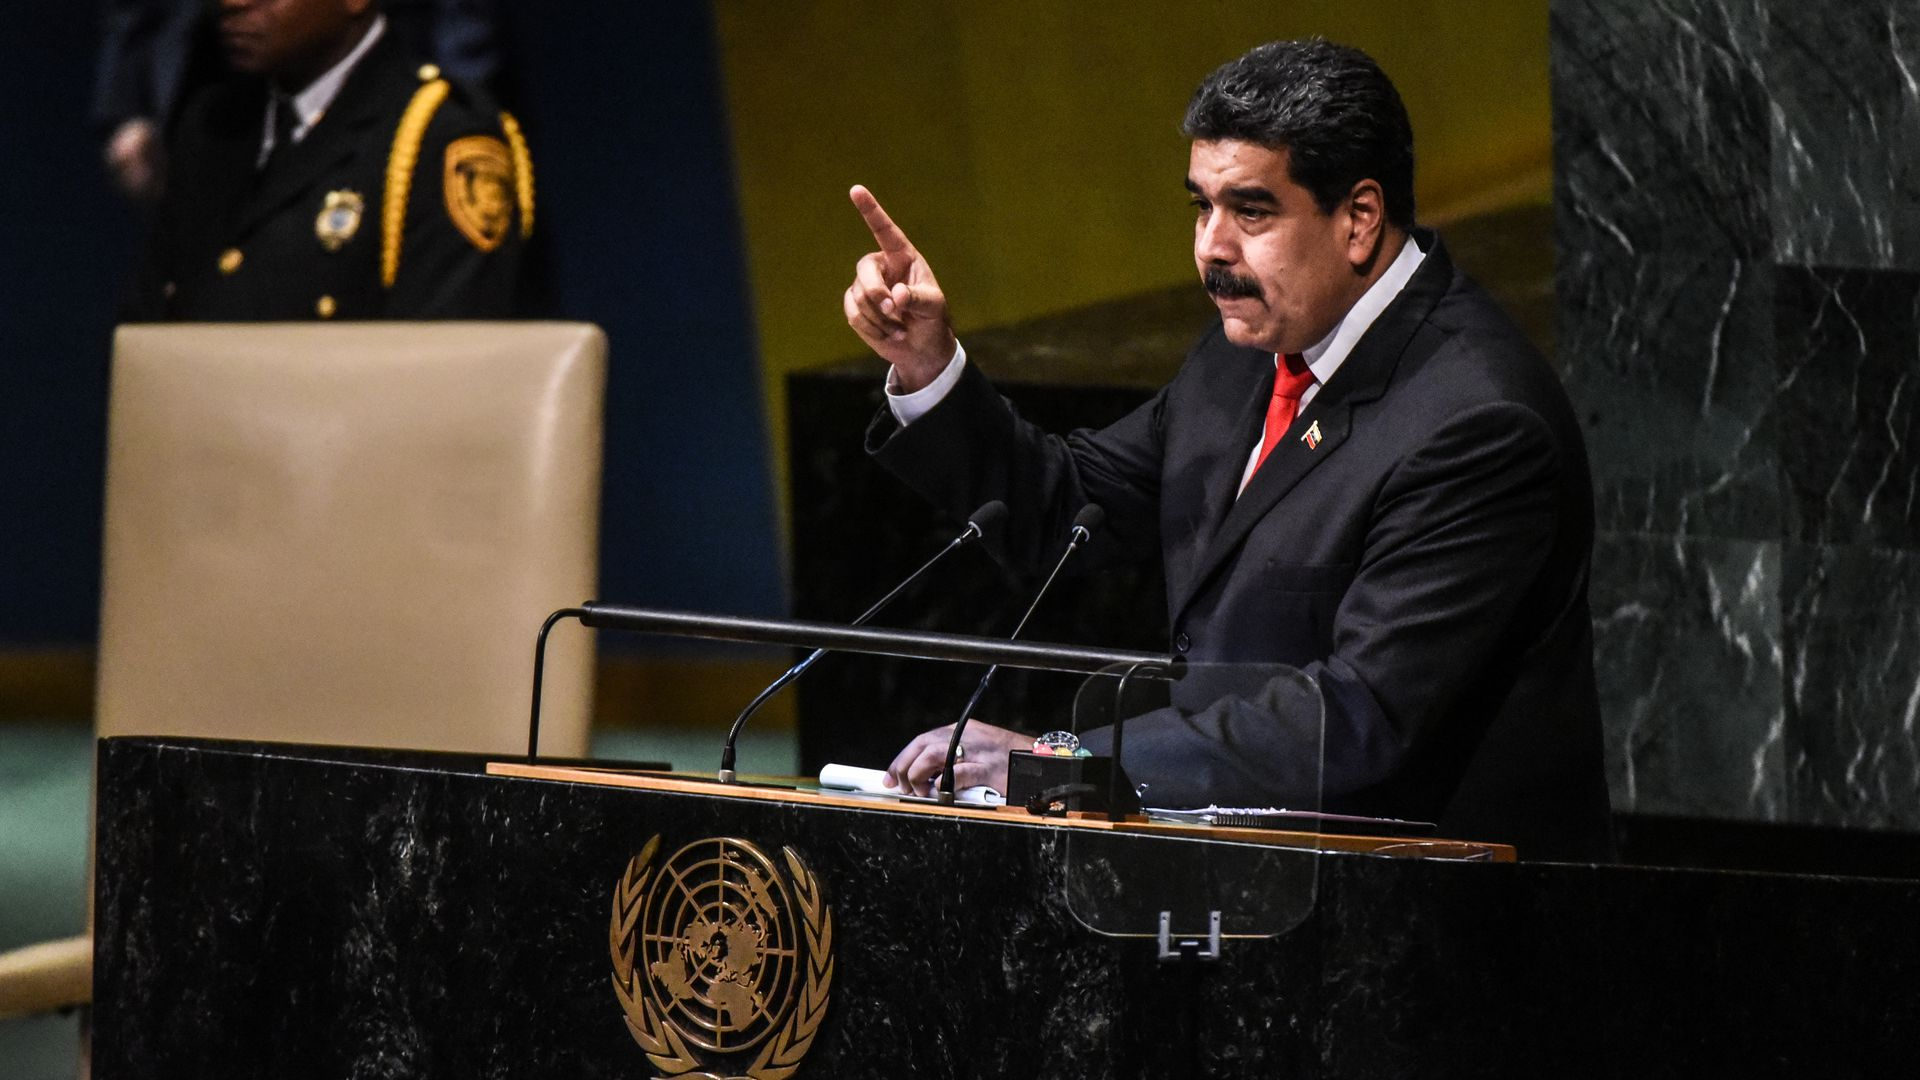 Nicolás Maduro, President of Venezuela delivers a speech at the United Nations during the General Assembly on September 26, 2018 in New York City.